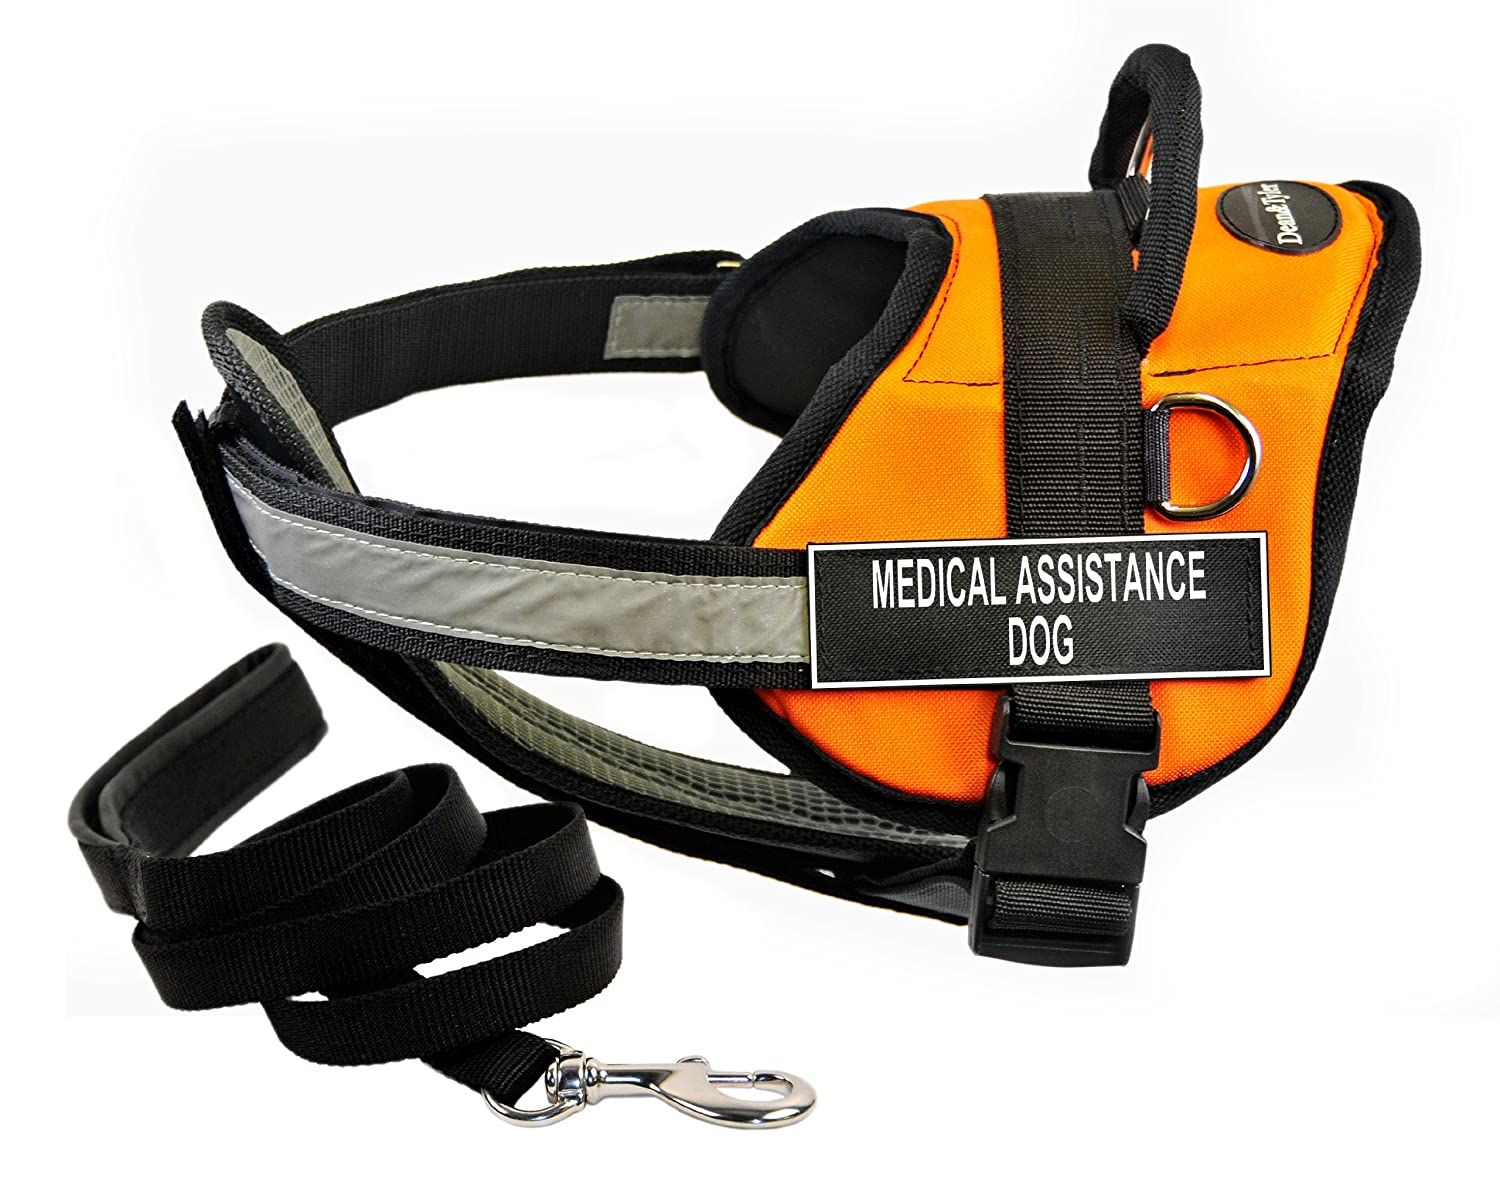 Dean & Tyler DT Works orange MEDICAL ASSISTANCE DOG Harness with Chest Padding, X-Small, and Black 6 ft Padded Puppy Leash.